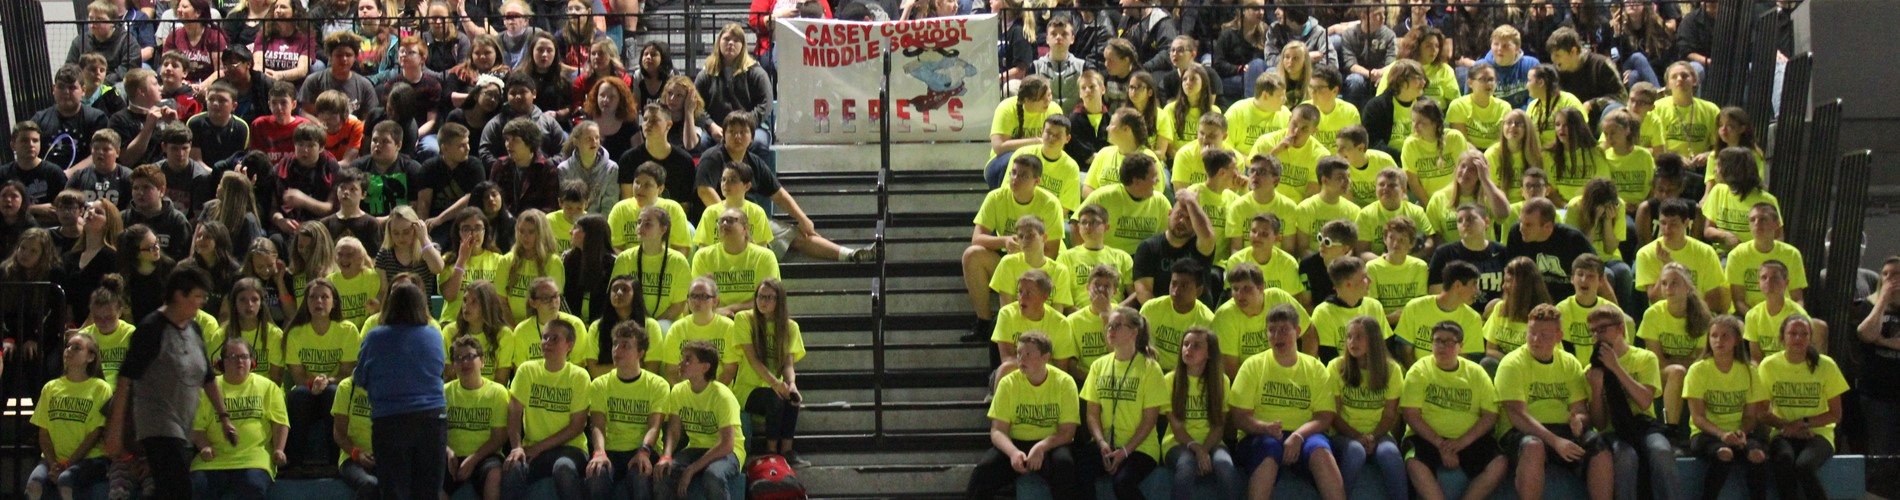 Casey County Middle School rocking the Distinguished shirts!